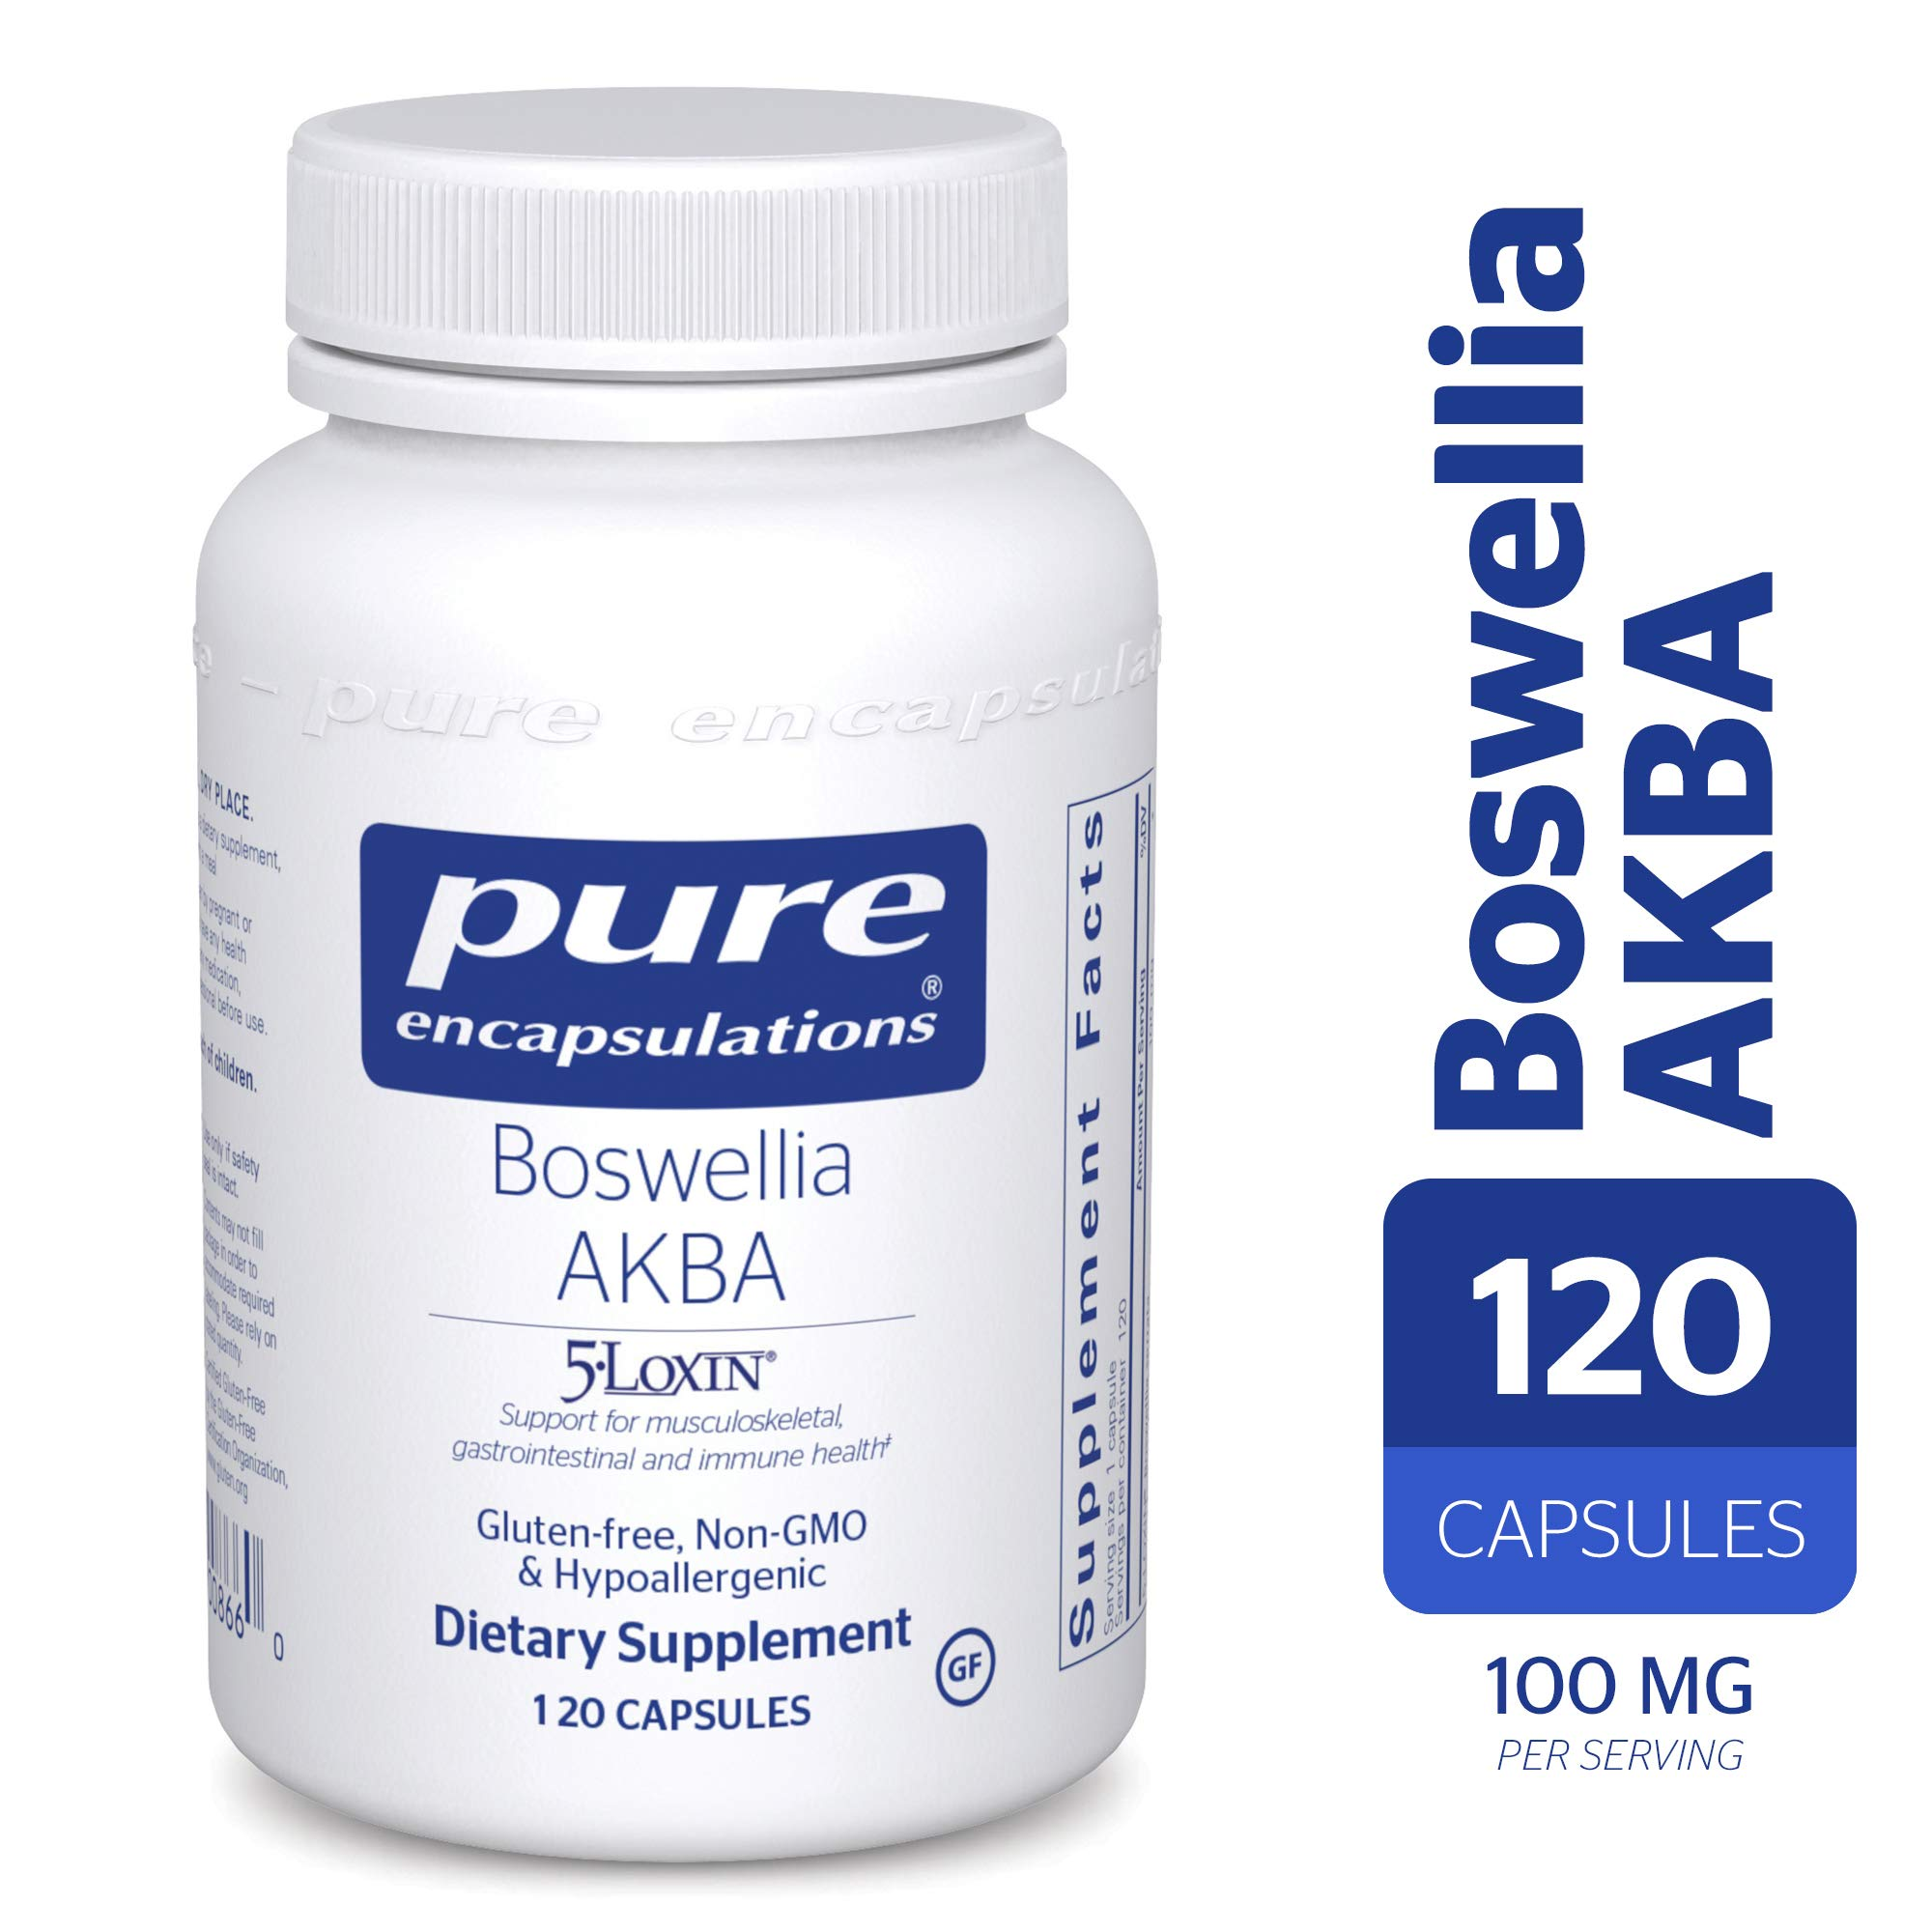 Pure Encapsulations - Boswellia AKBA - Hypoallergenic Support for Immune, Joint, Gastrointestinal and Cell Health* - 120 Capsules